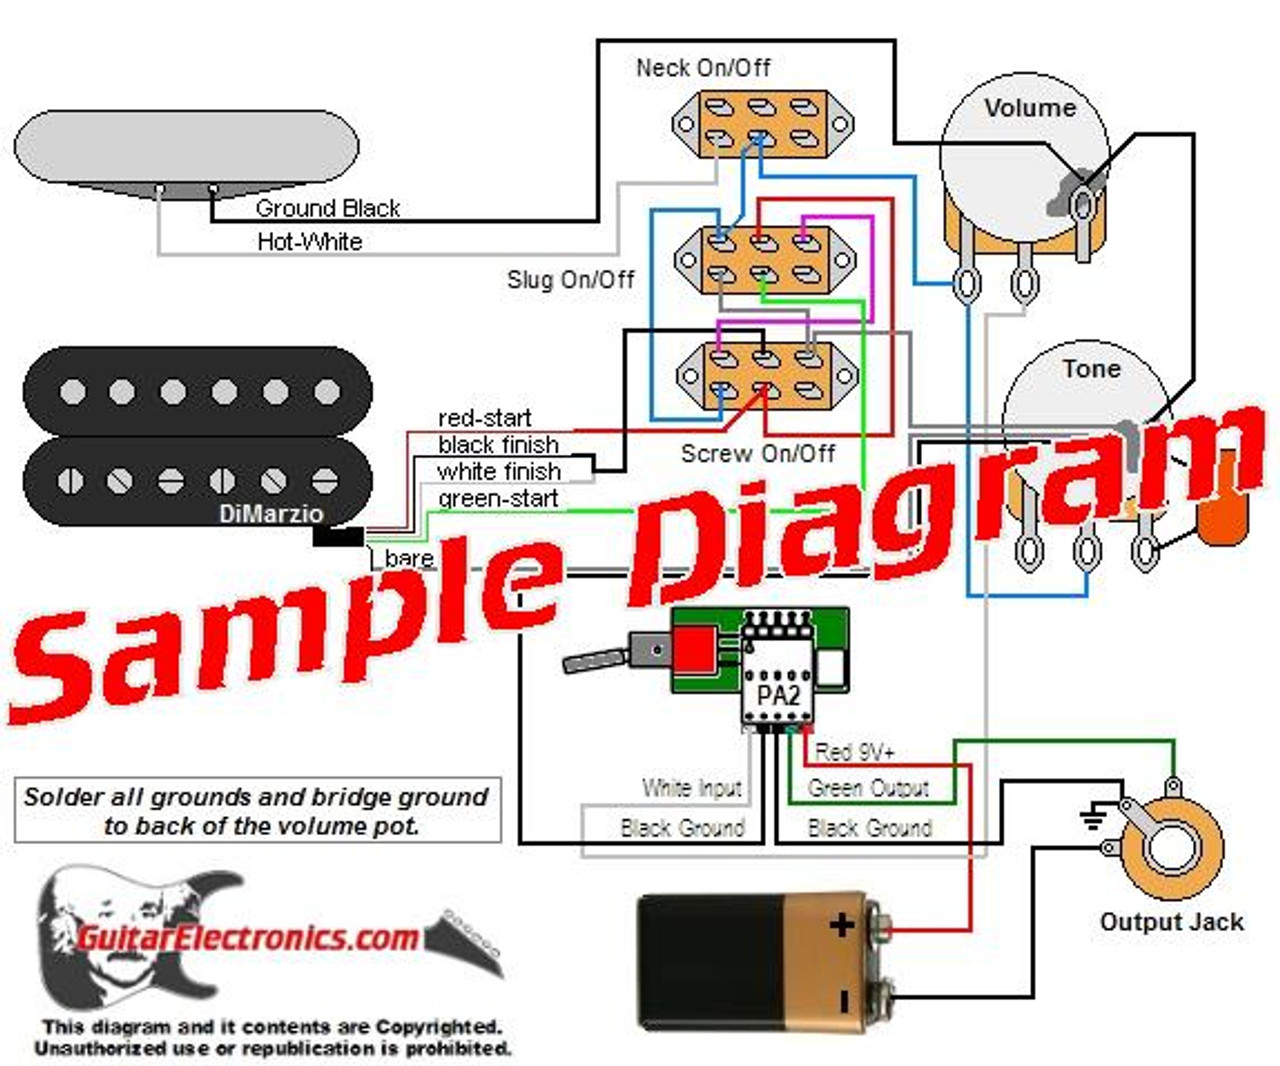 2 Pickup Sample Custom Diagram- 1 Humbucker with Tele Pickup and EMG Preamp